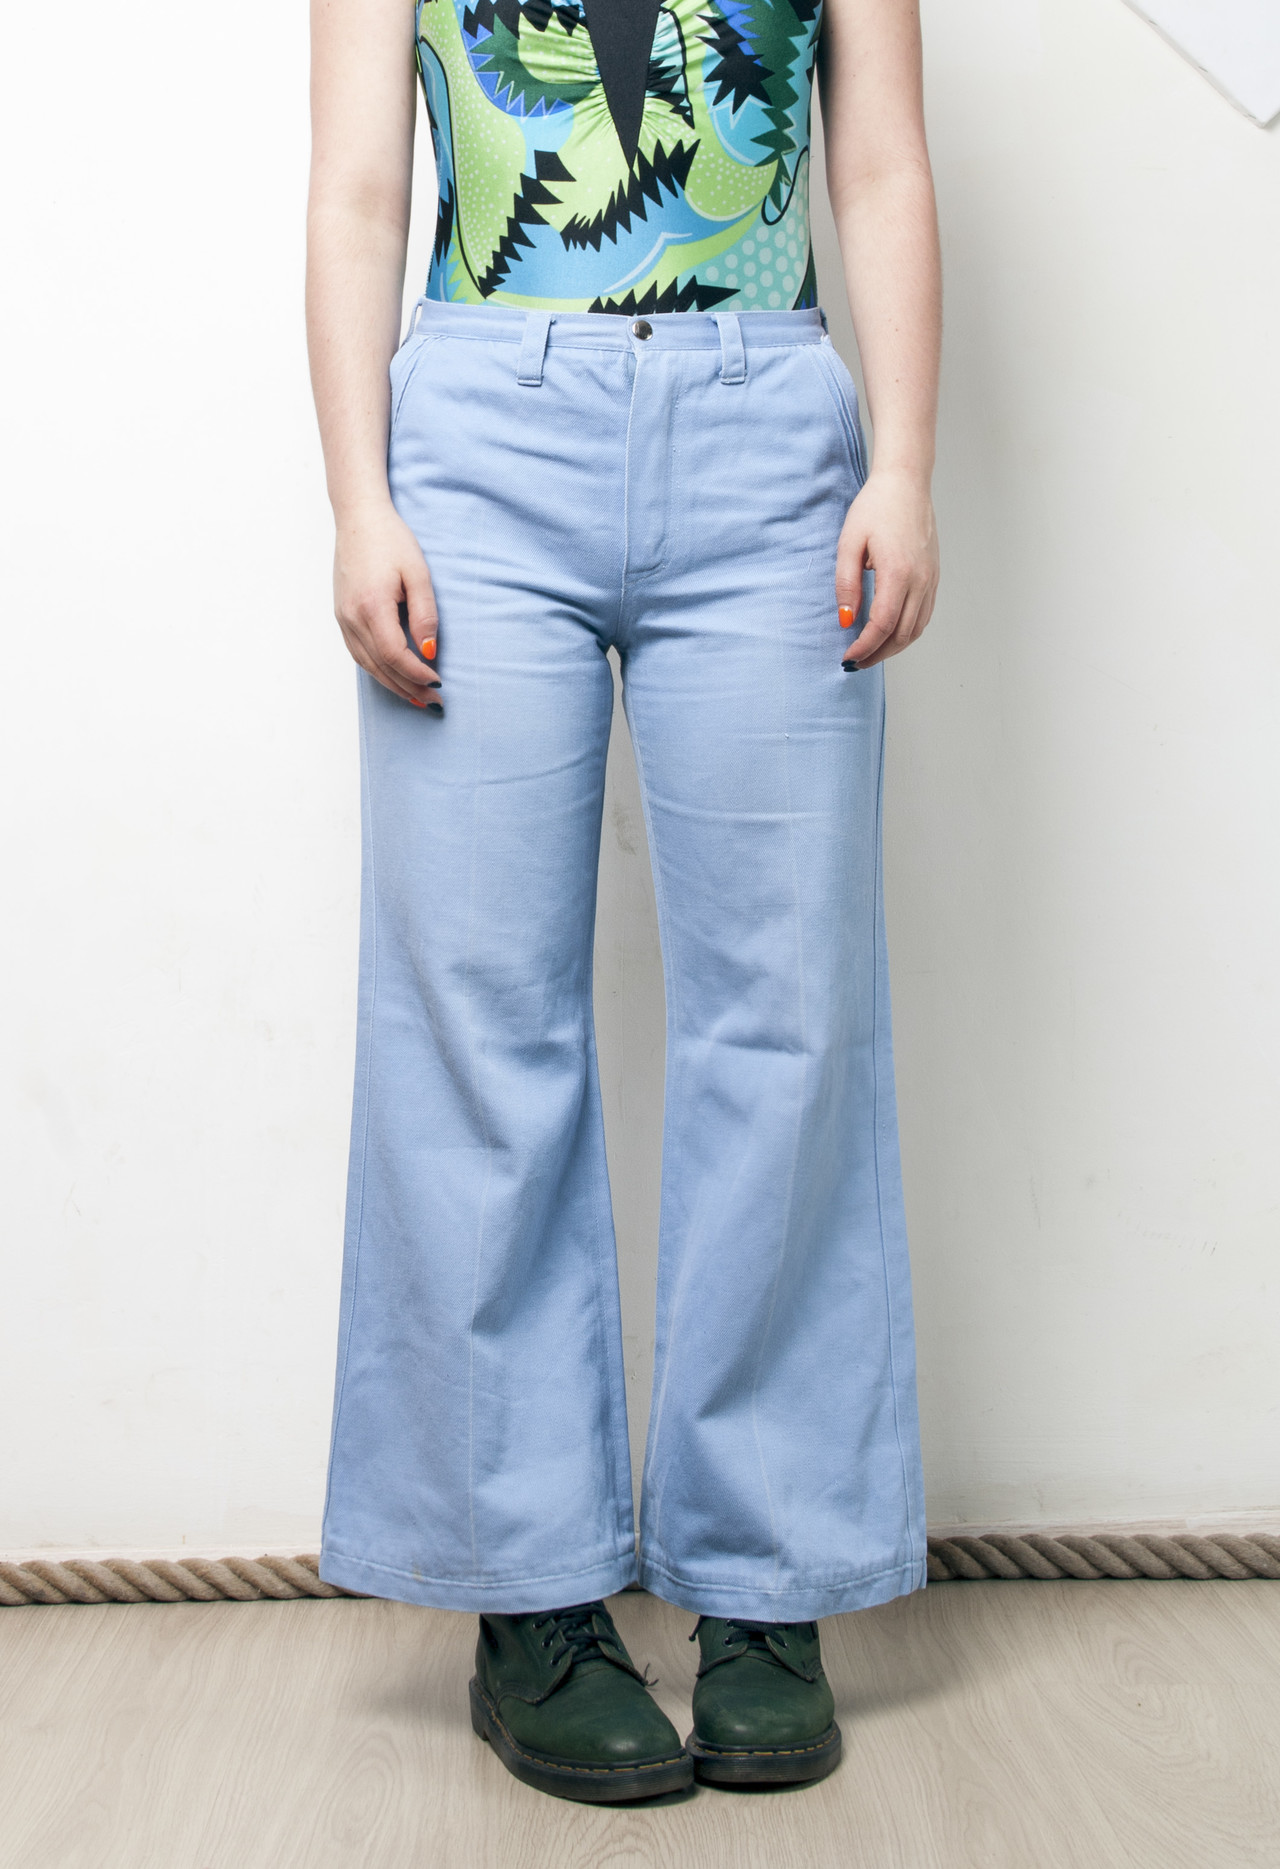 Pastel flares 70s vintage jeans from Pop Sick